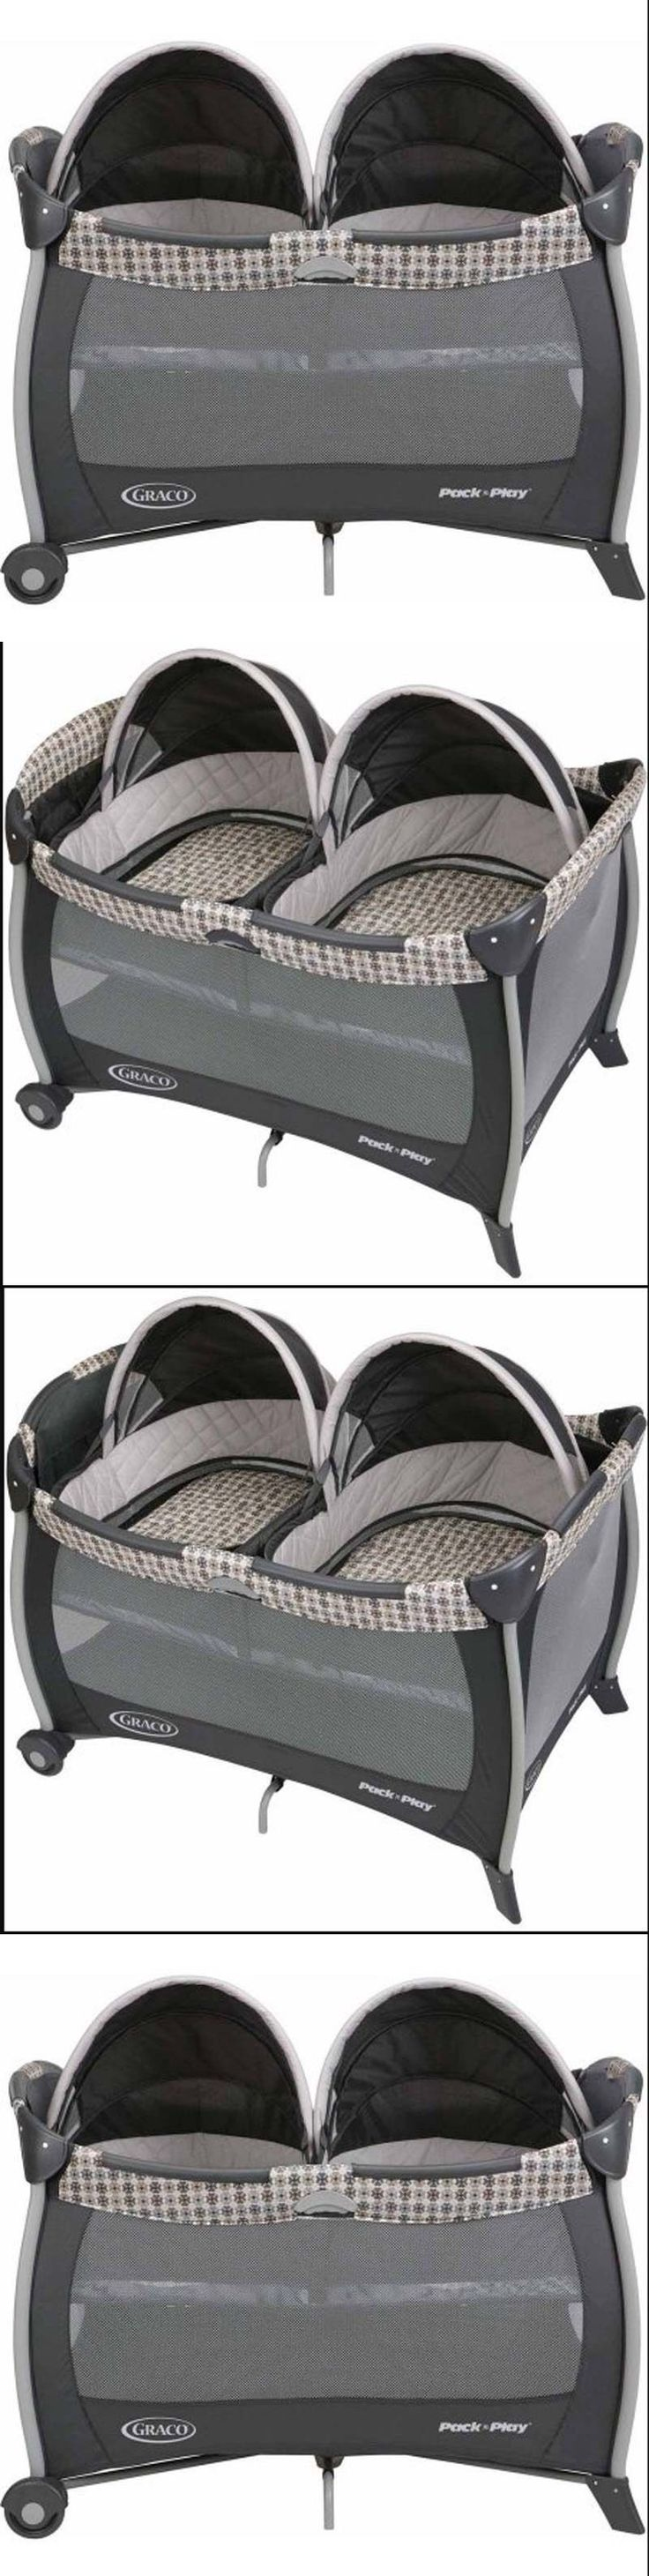 graco bedroom bassinet portable crib. baby nursery: twin bassinet playard for portable infant bed removable quilted crib - graco bedroom h